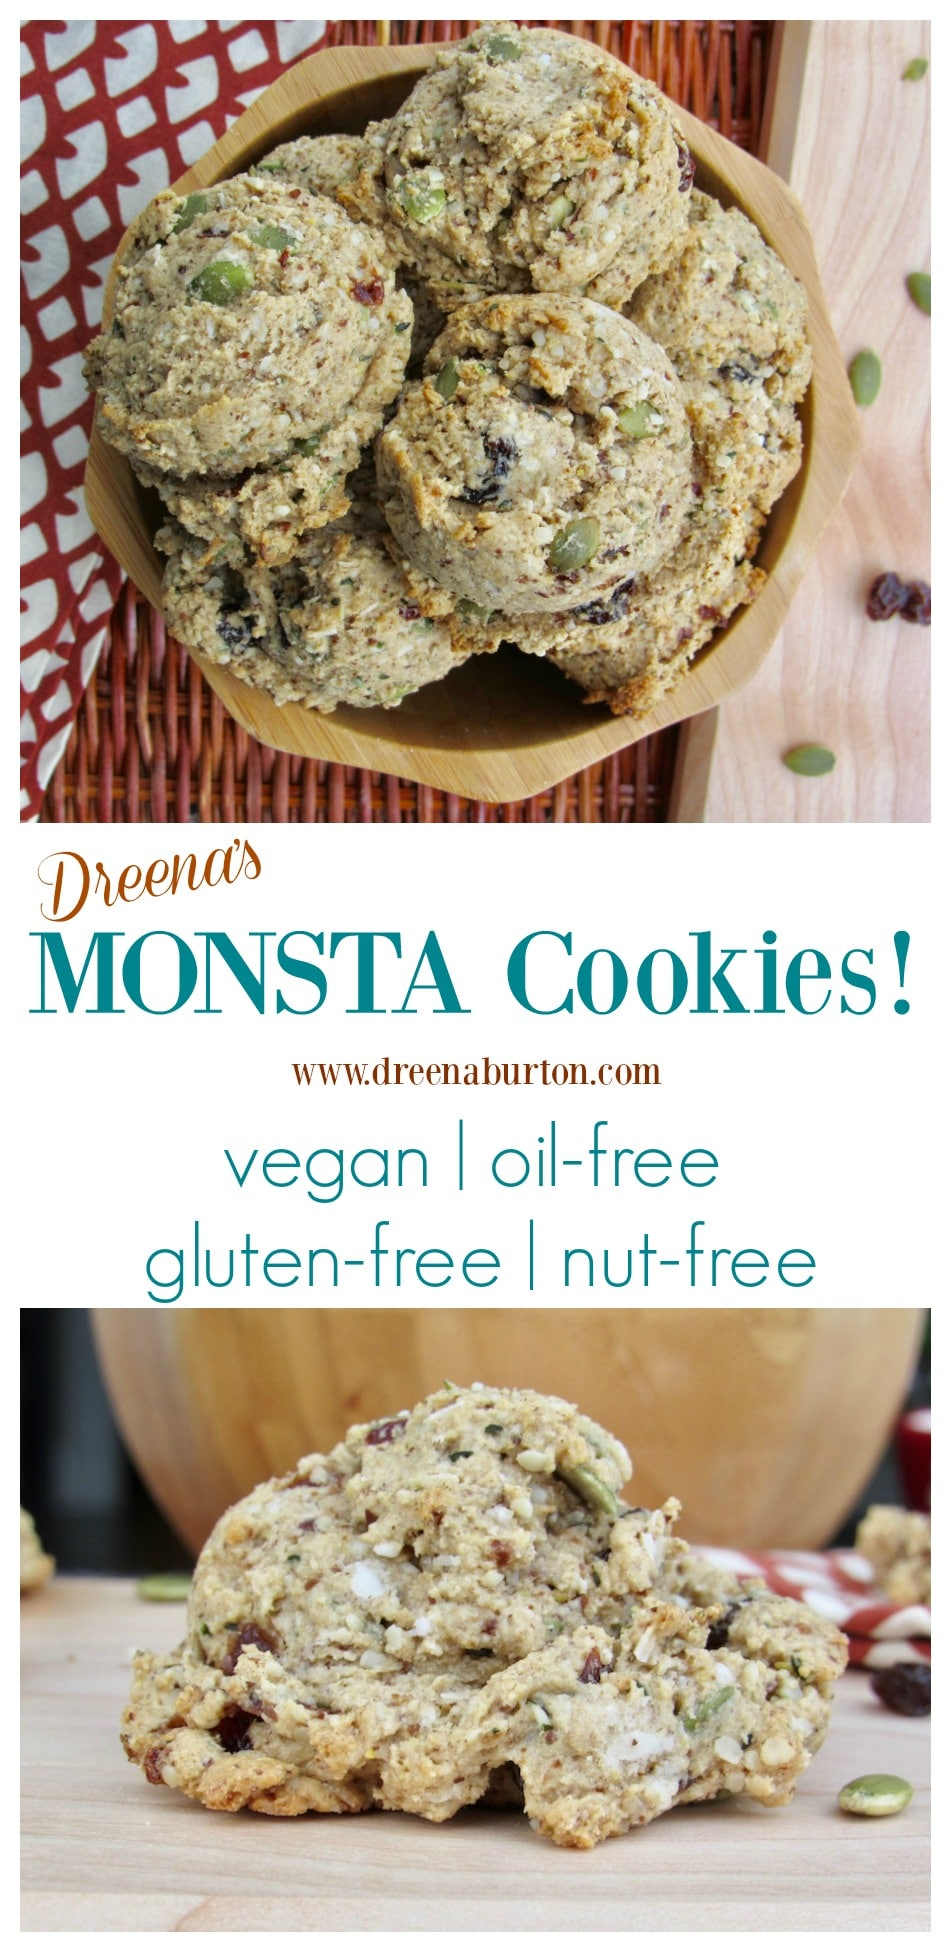 MONSTA Cookies! Monsta good #vegan cookies, also #oilfree #glutenfree #wholegrain #nutfree! #plantbased #baking #cookies